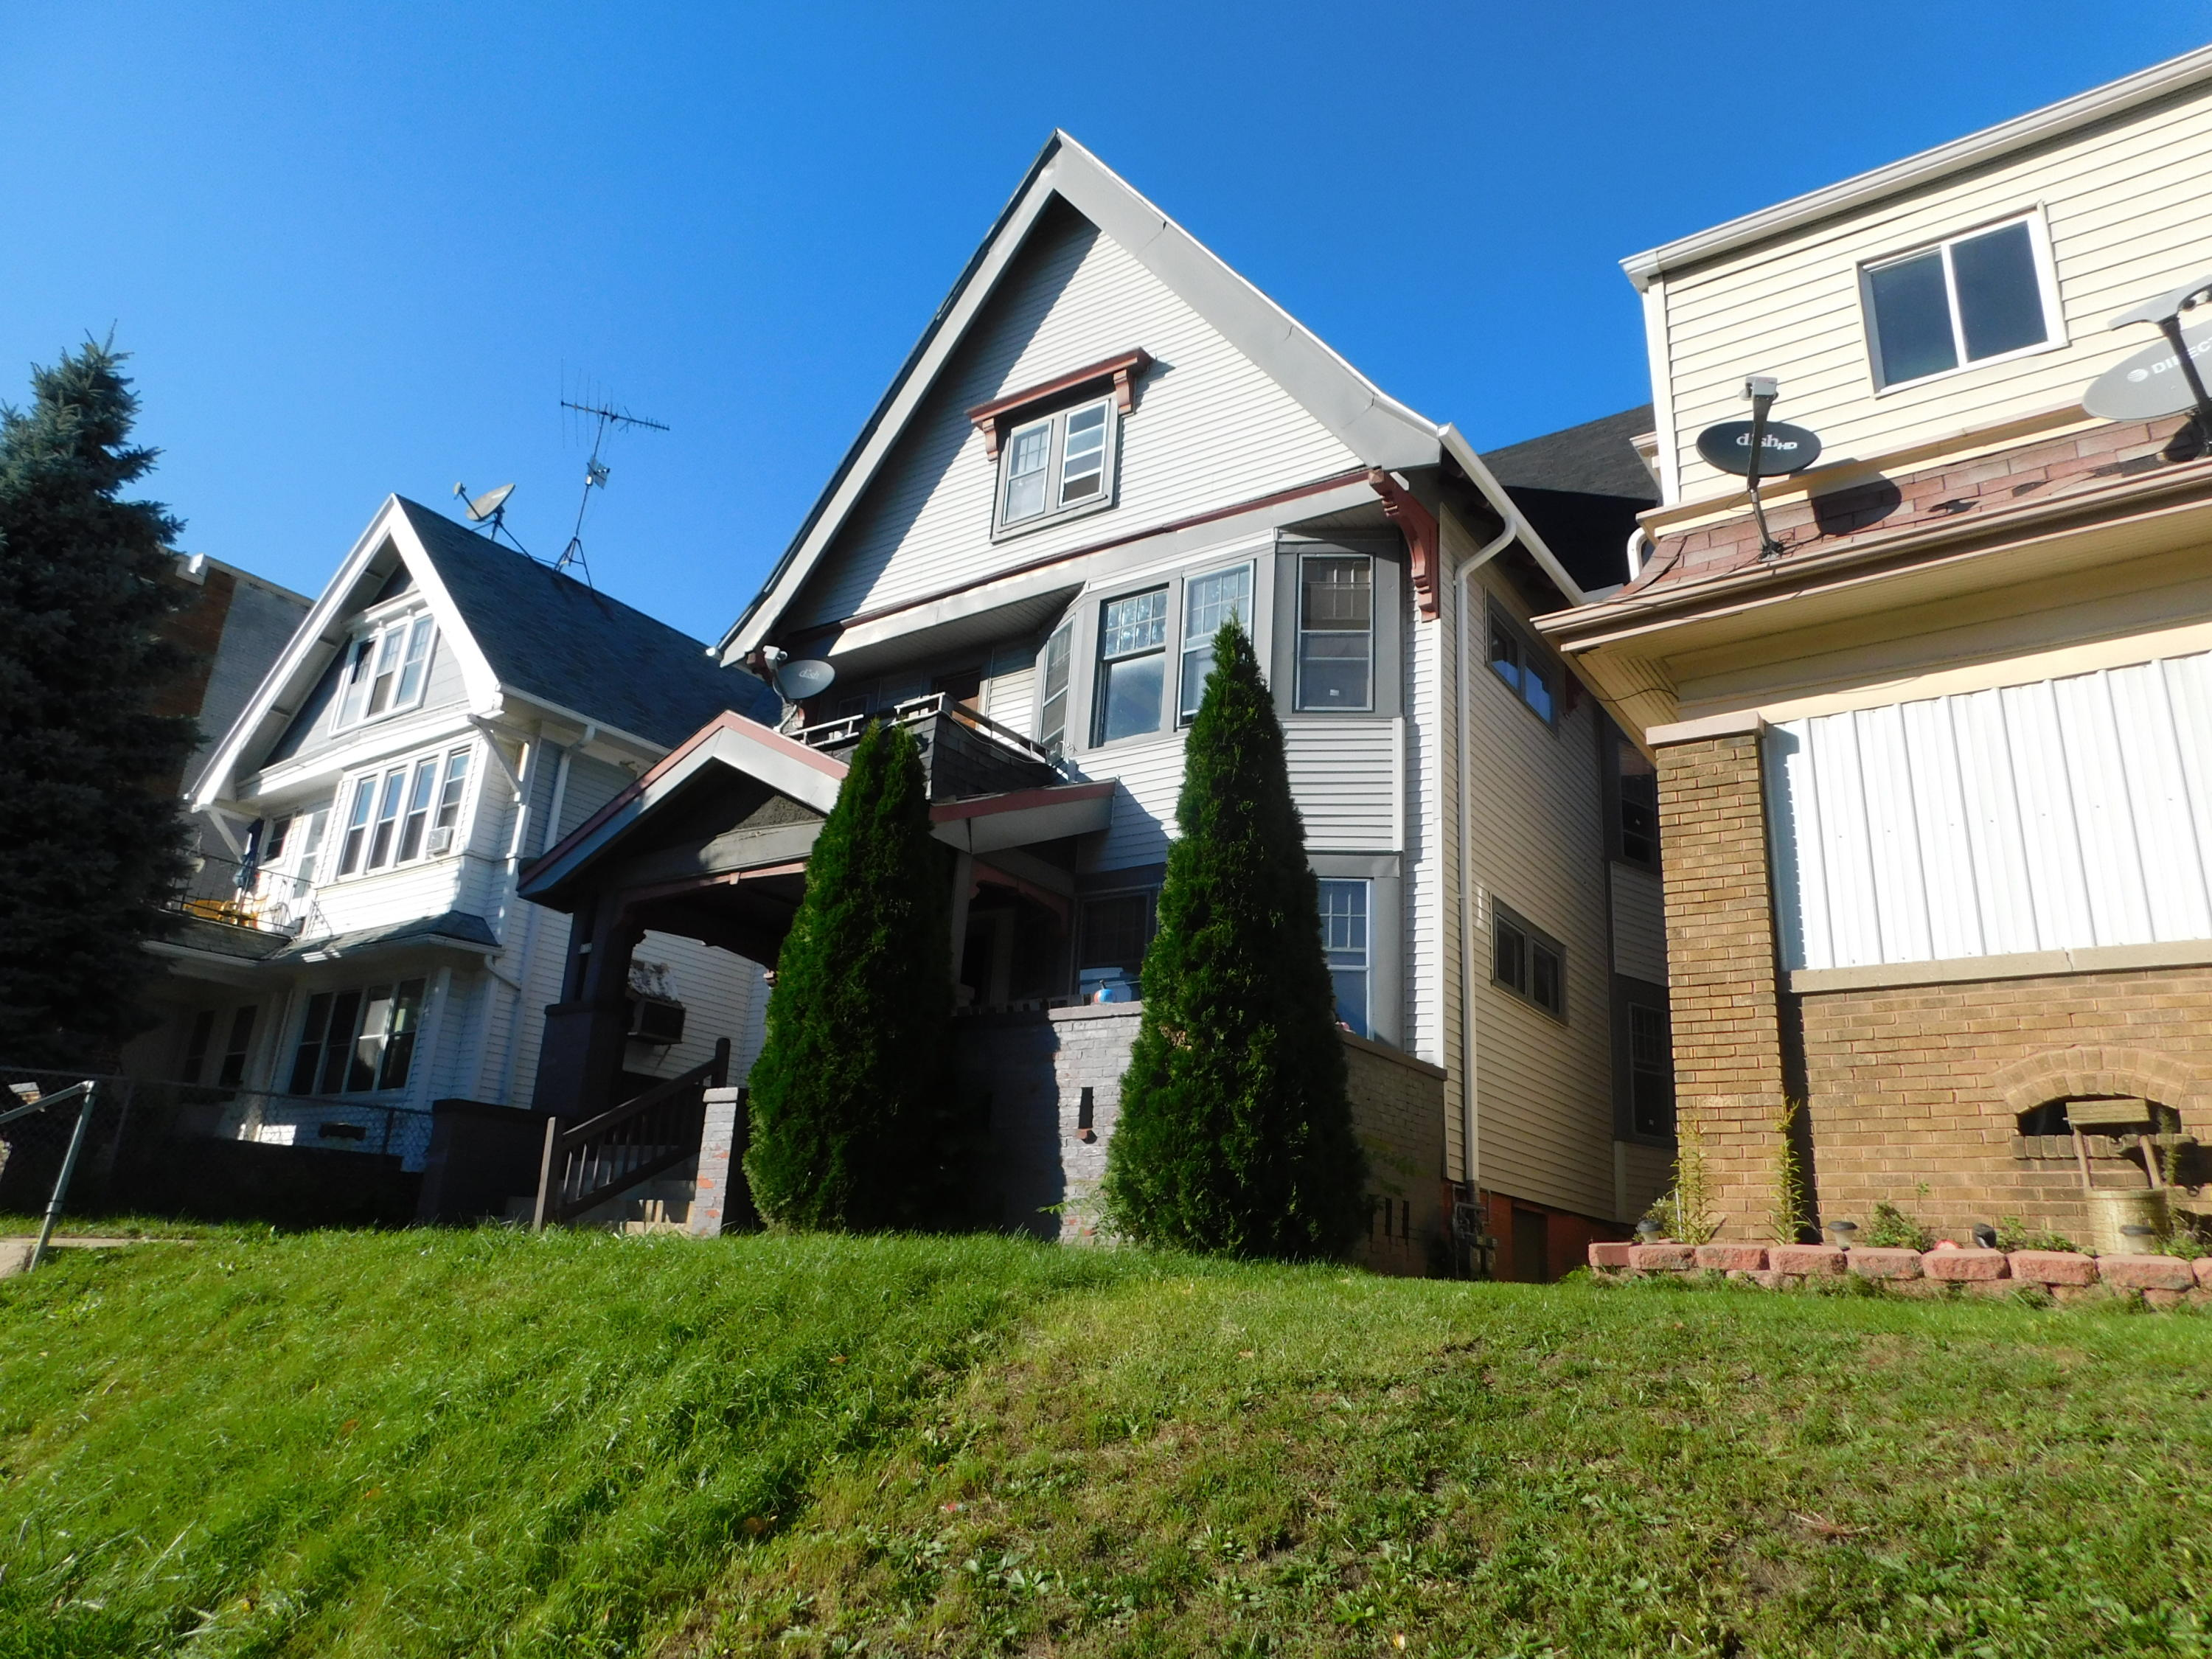 3110 NATIONAL AVE, Milwaukee, Wisconsin 53215, 3 Bedrooms Bedrooms, 6 Rooms Rooms,1 BathroomBathrooms,Two-Family,For Sale,NATIONAL AVE,1,1610839